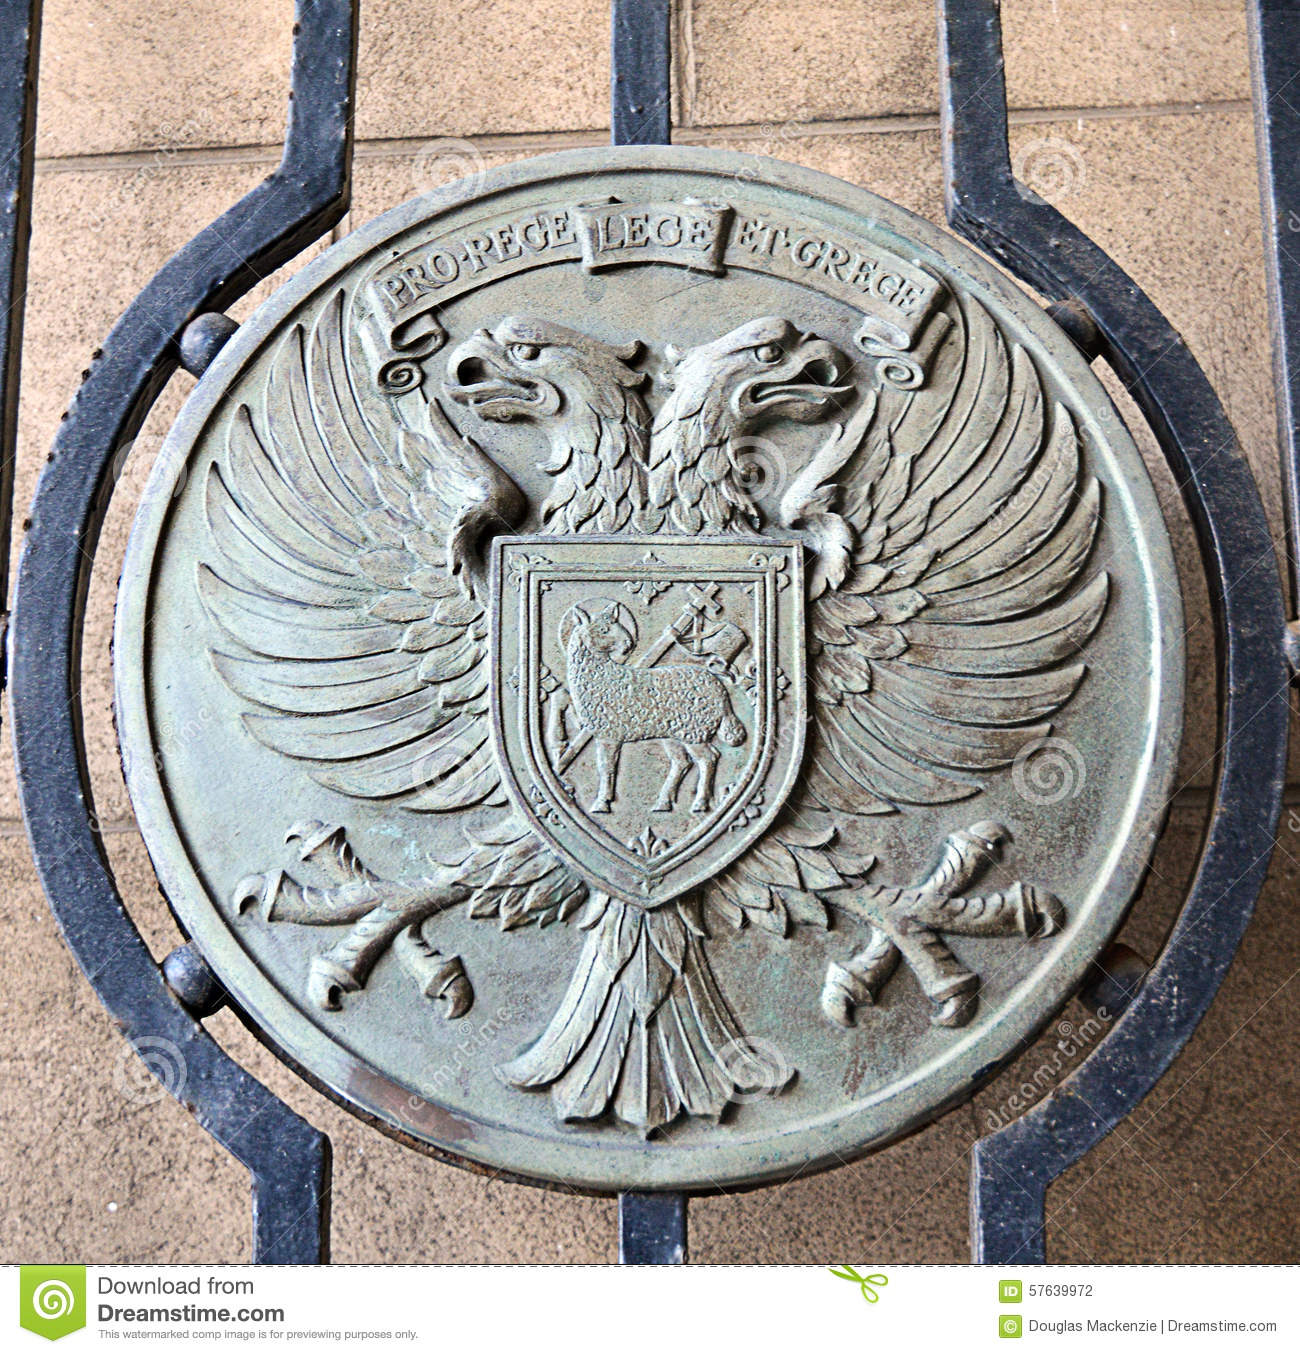 You Plate It Perth Metal Plate On A Gate Displaying Coat Of Arms Of City Of